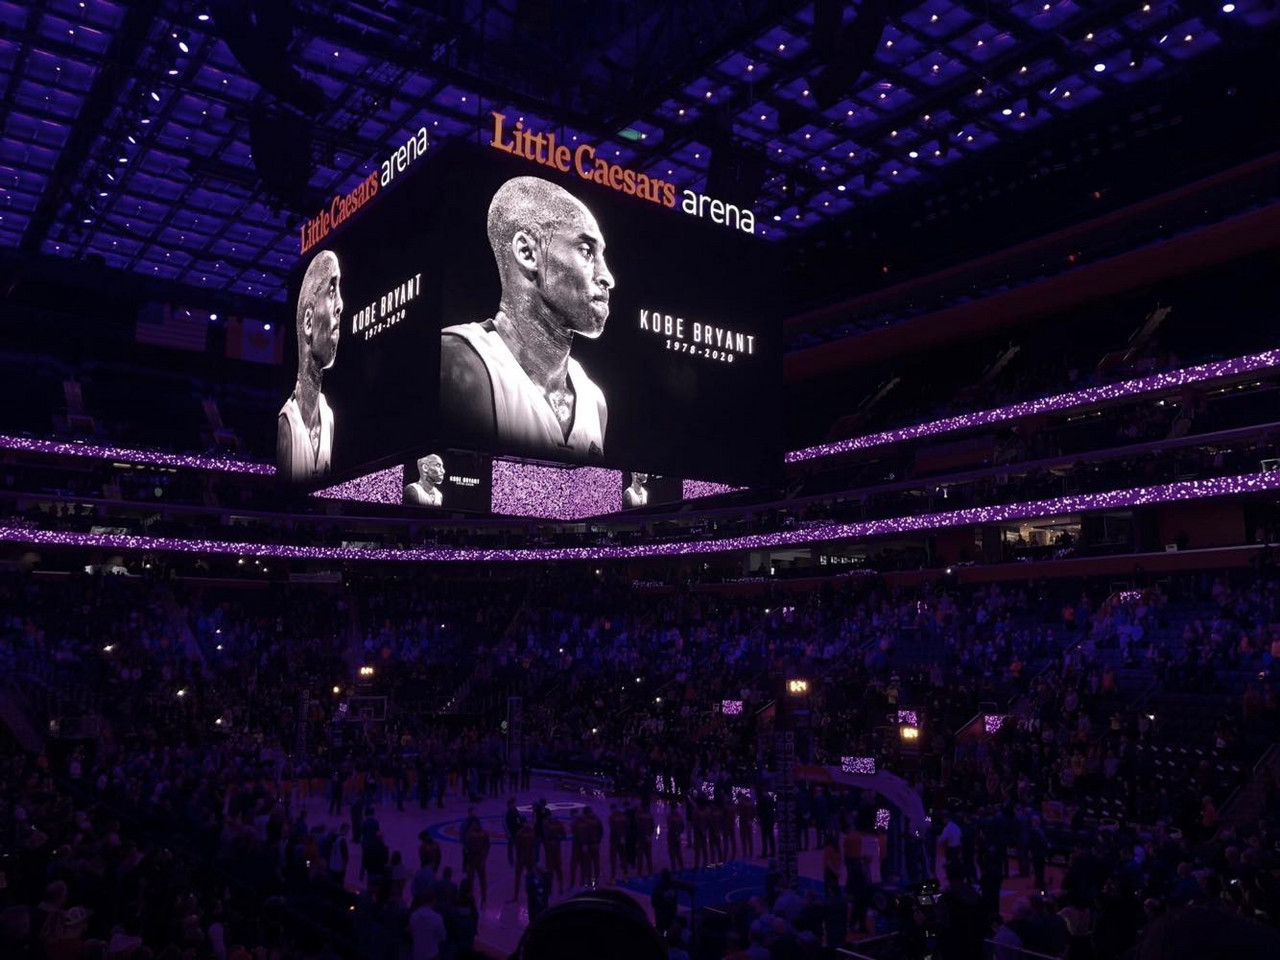 Kobe Bryant recognized league-wide